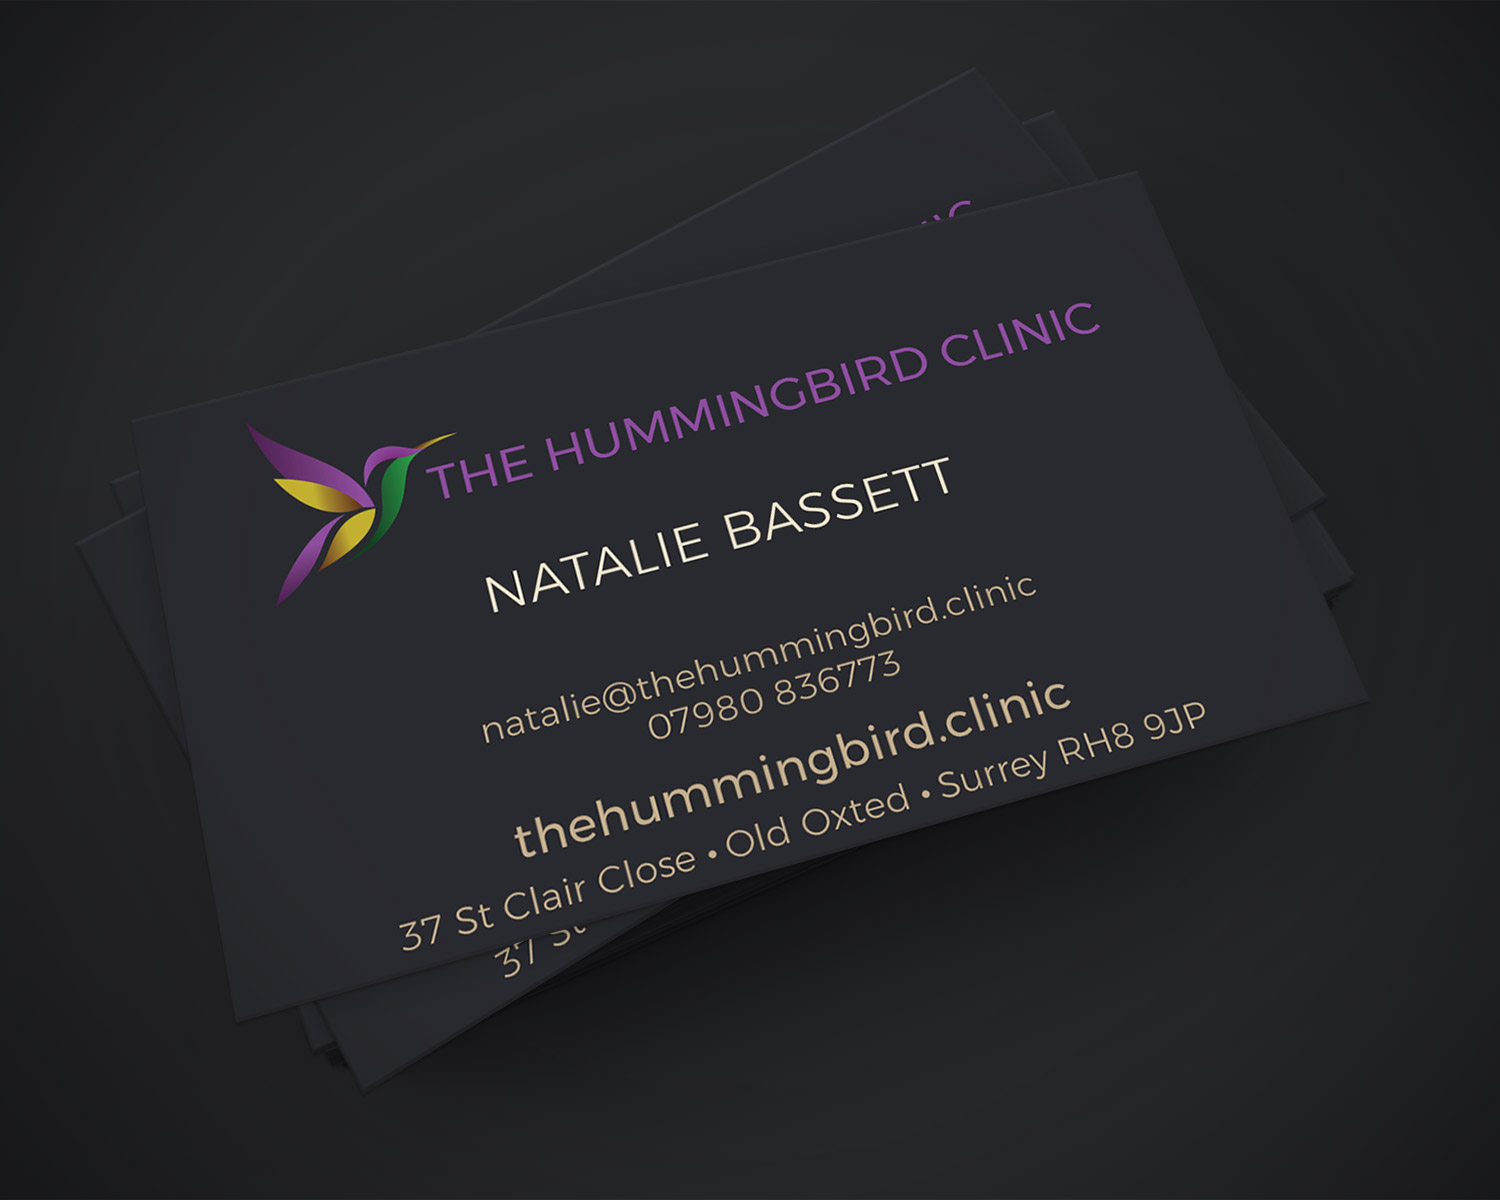 Branding-for-The-Hmmingbird-Clinic_Oxted